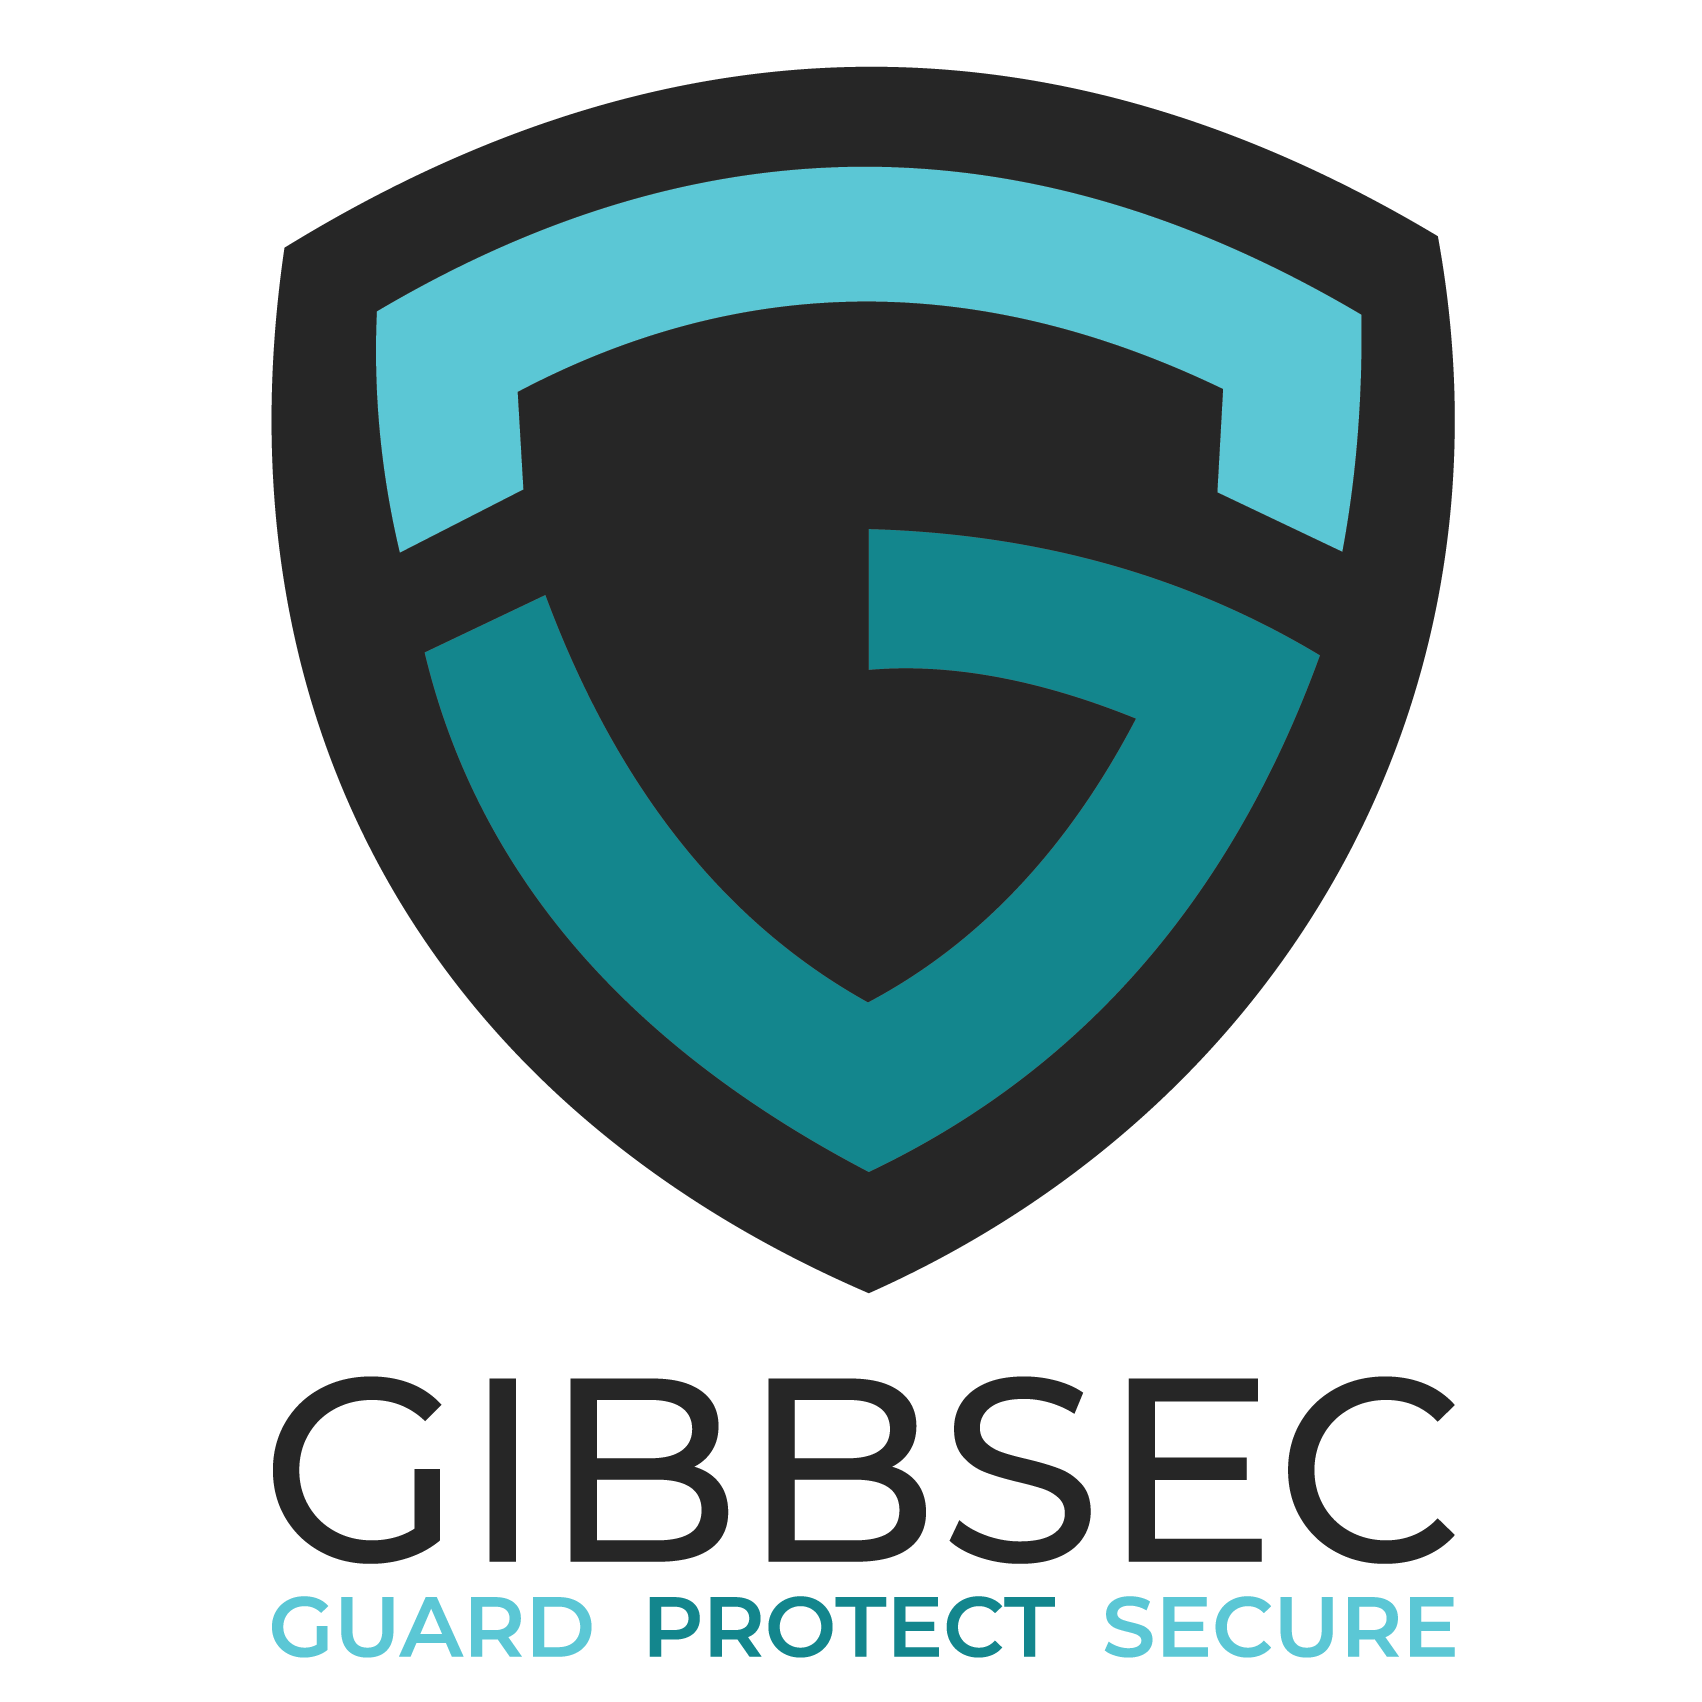 Gibbsec Security Services across Belfast